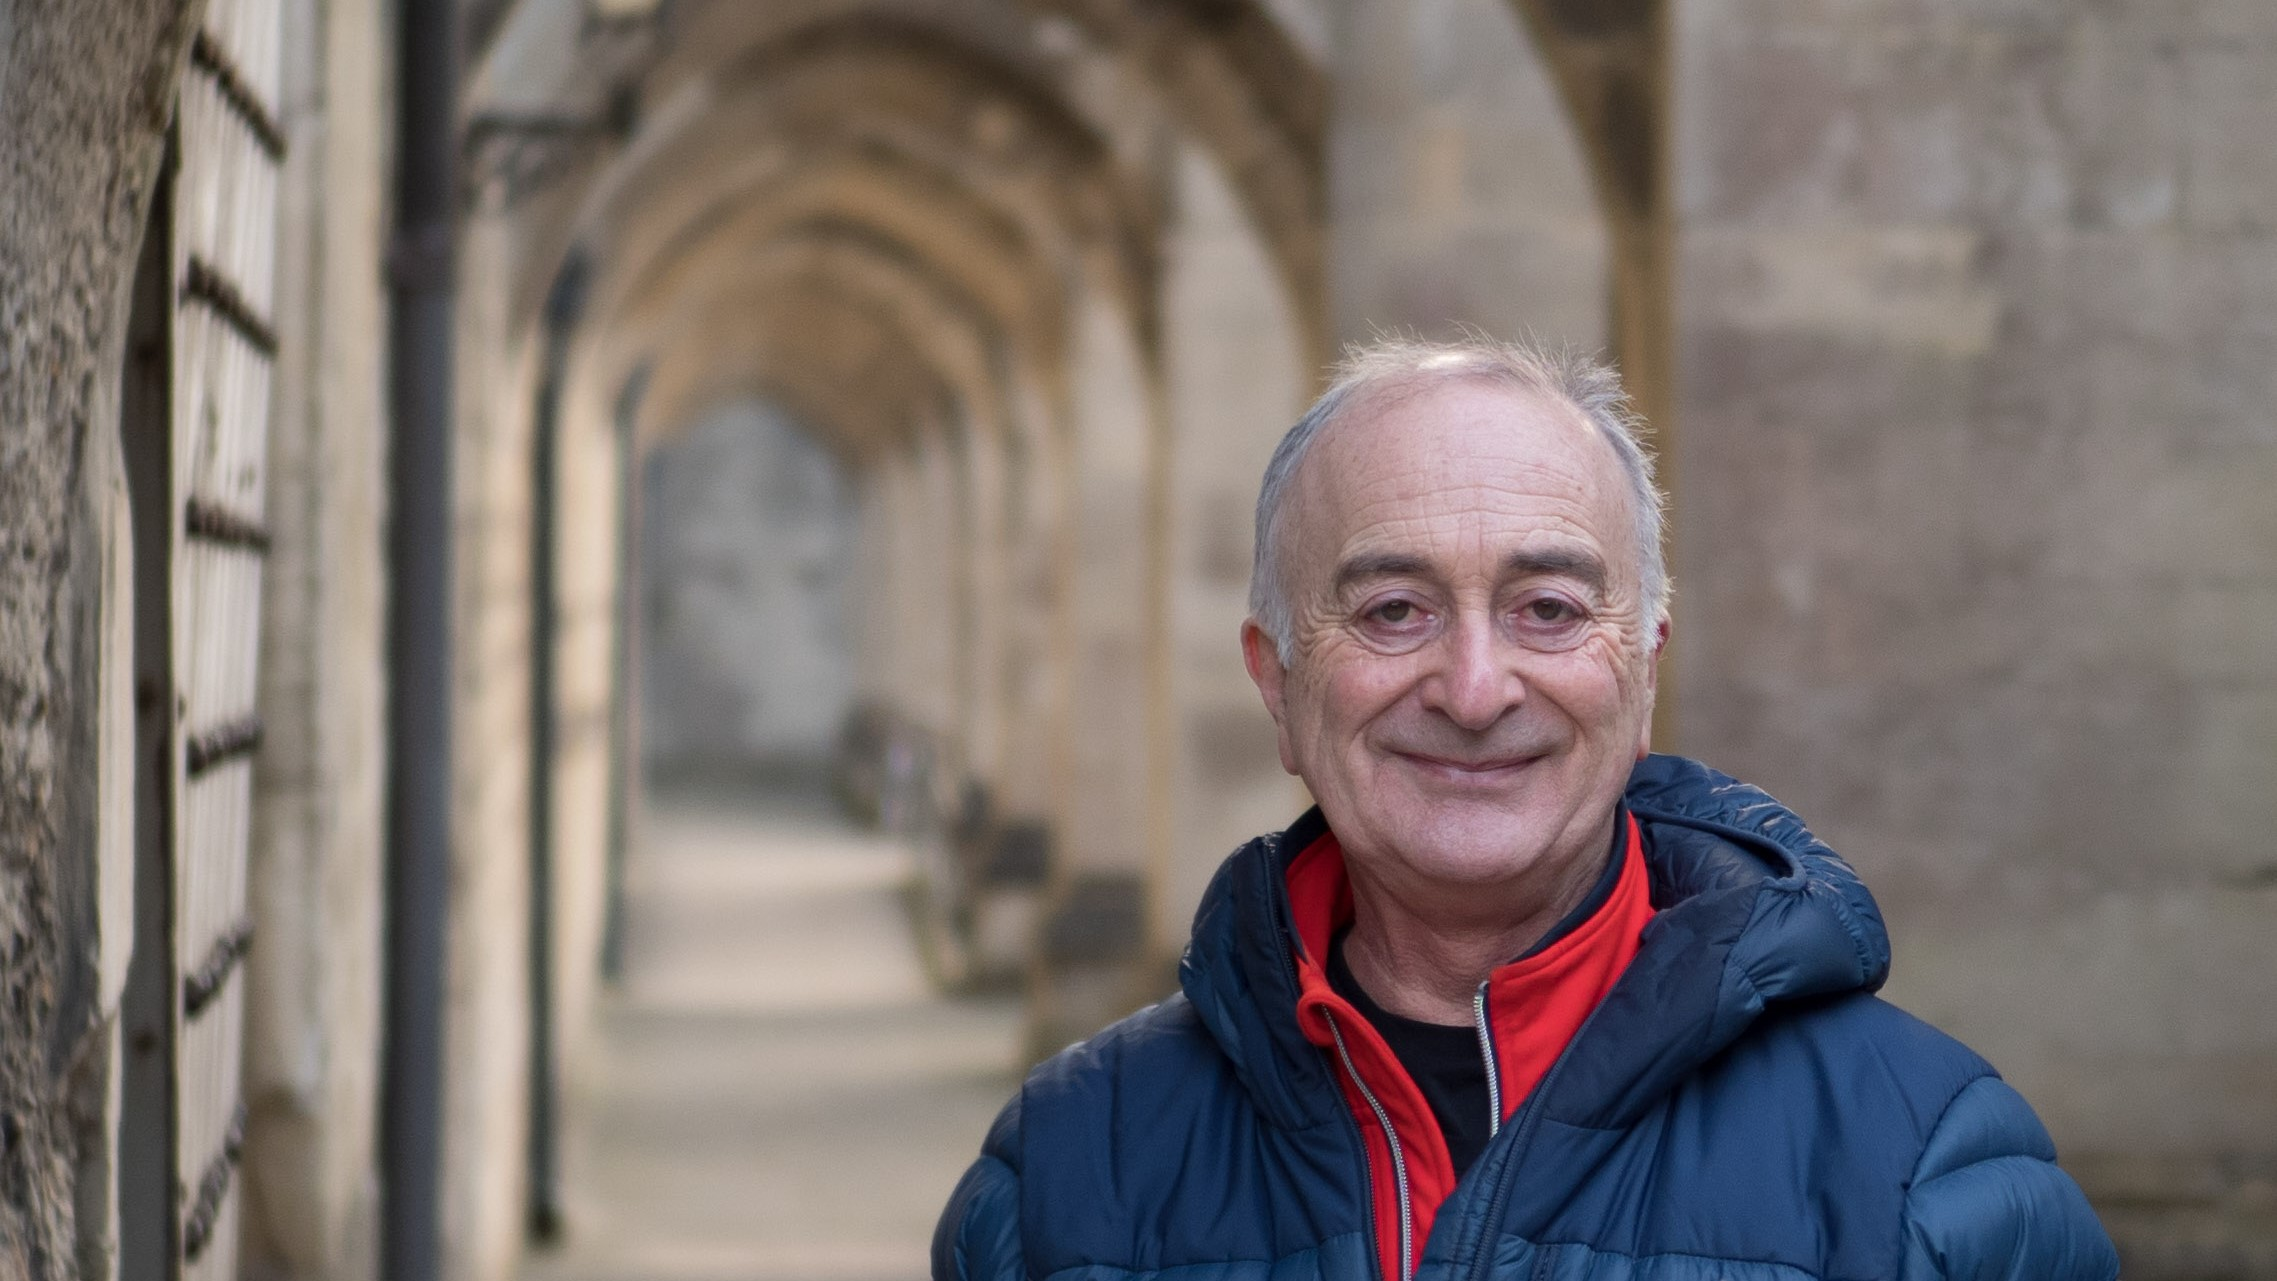 Our interview with Tony Robinson